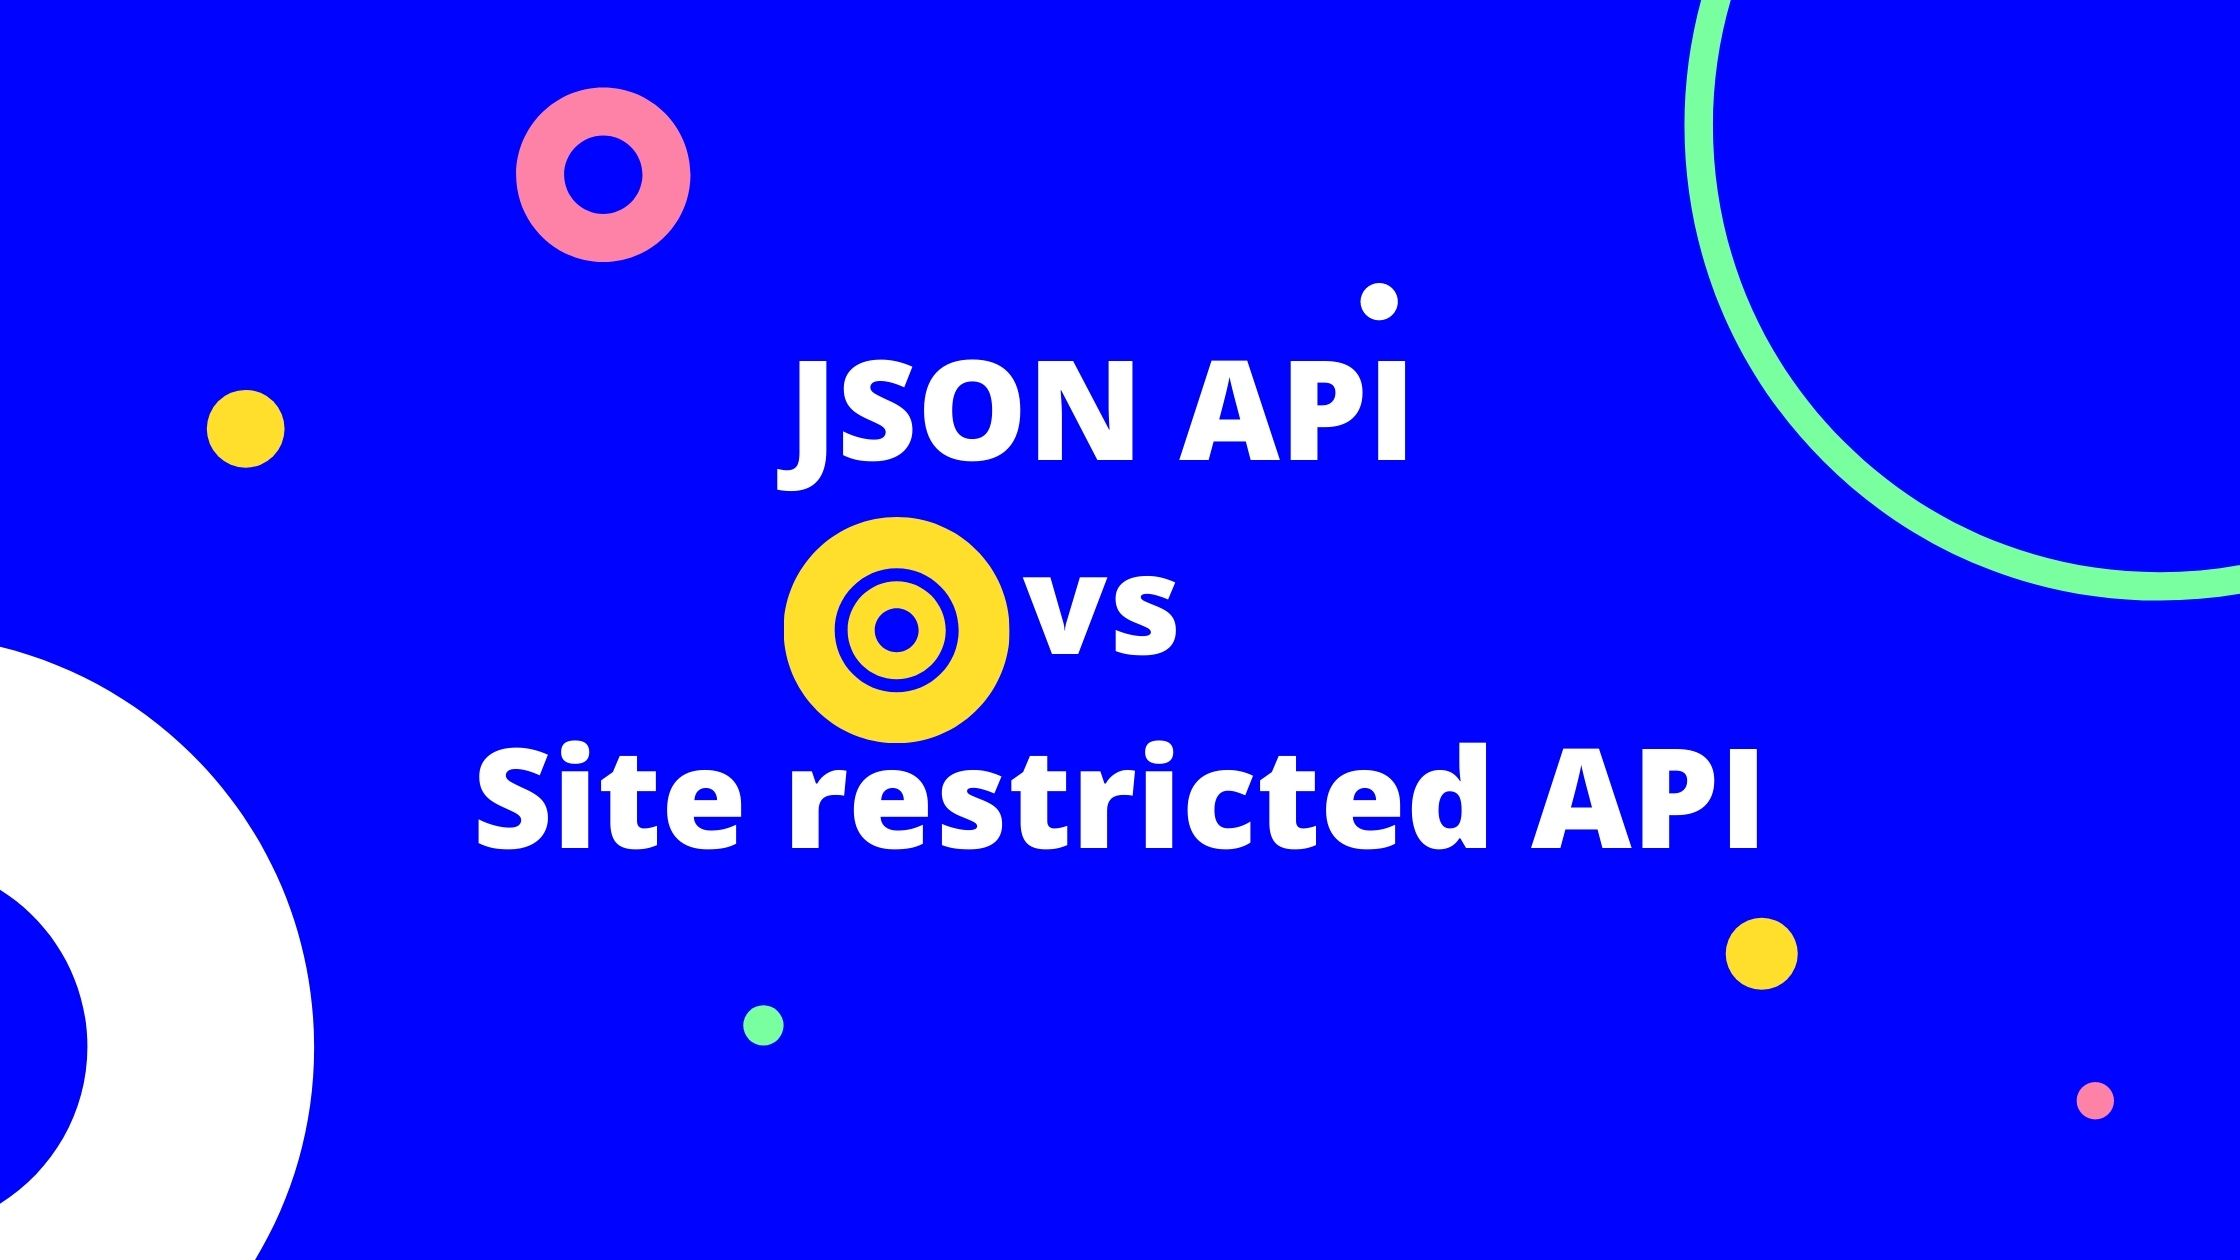 JSON API vs Site restricted API